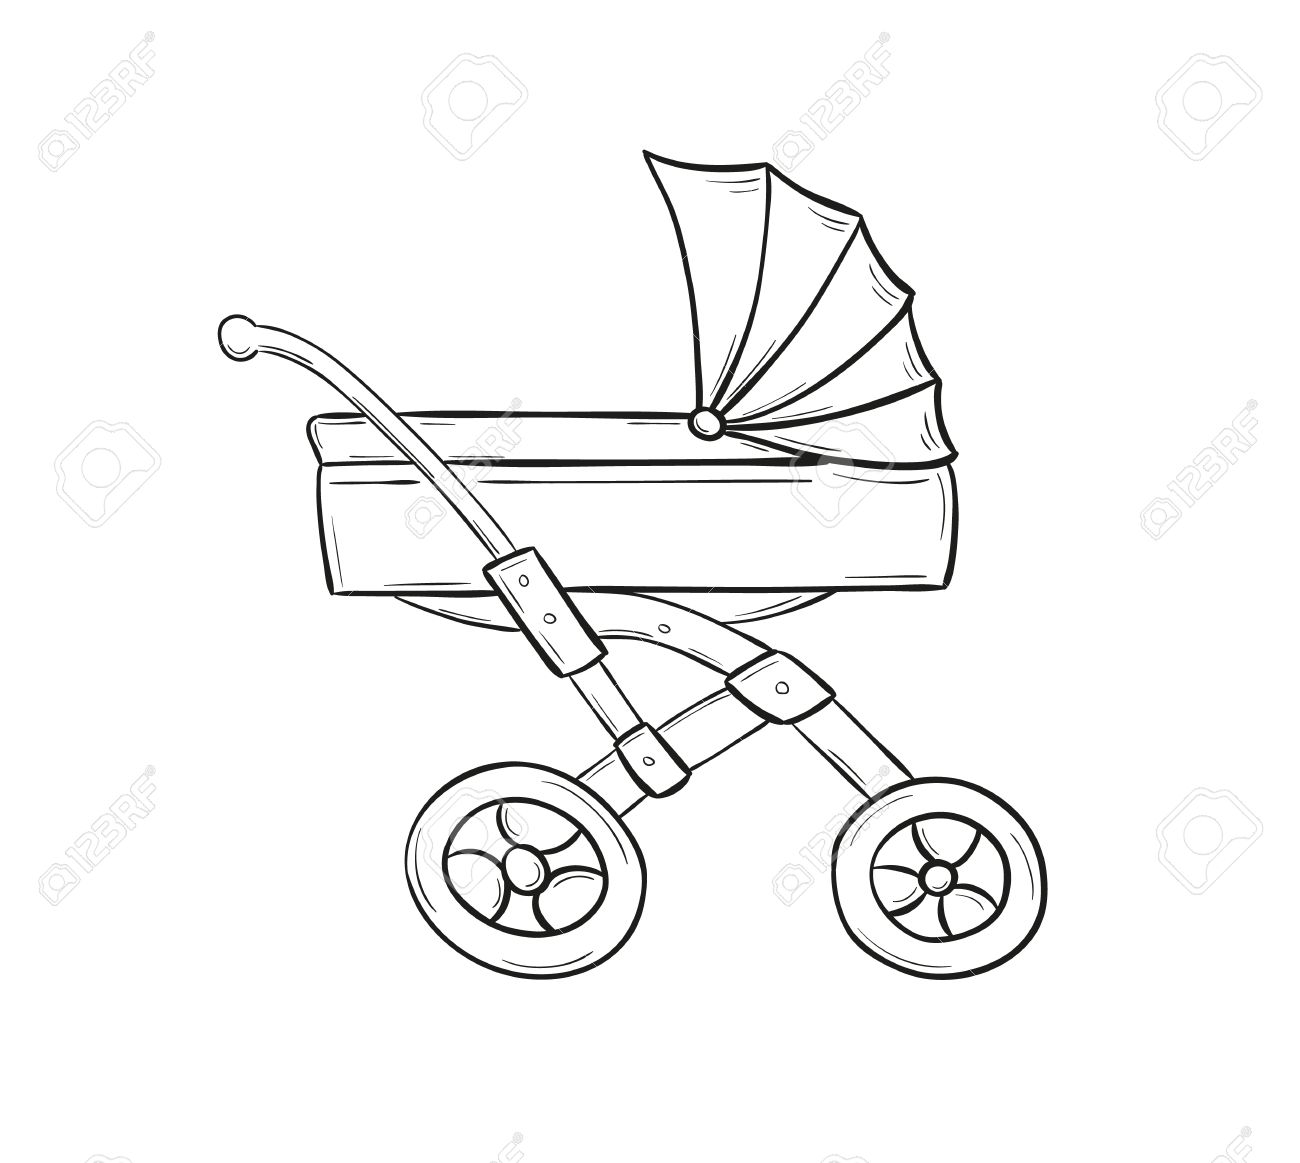 Stroller Drawing At Getdrawings